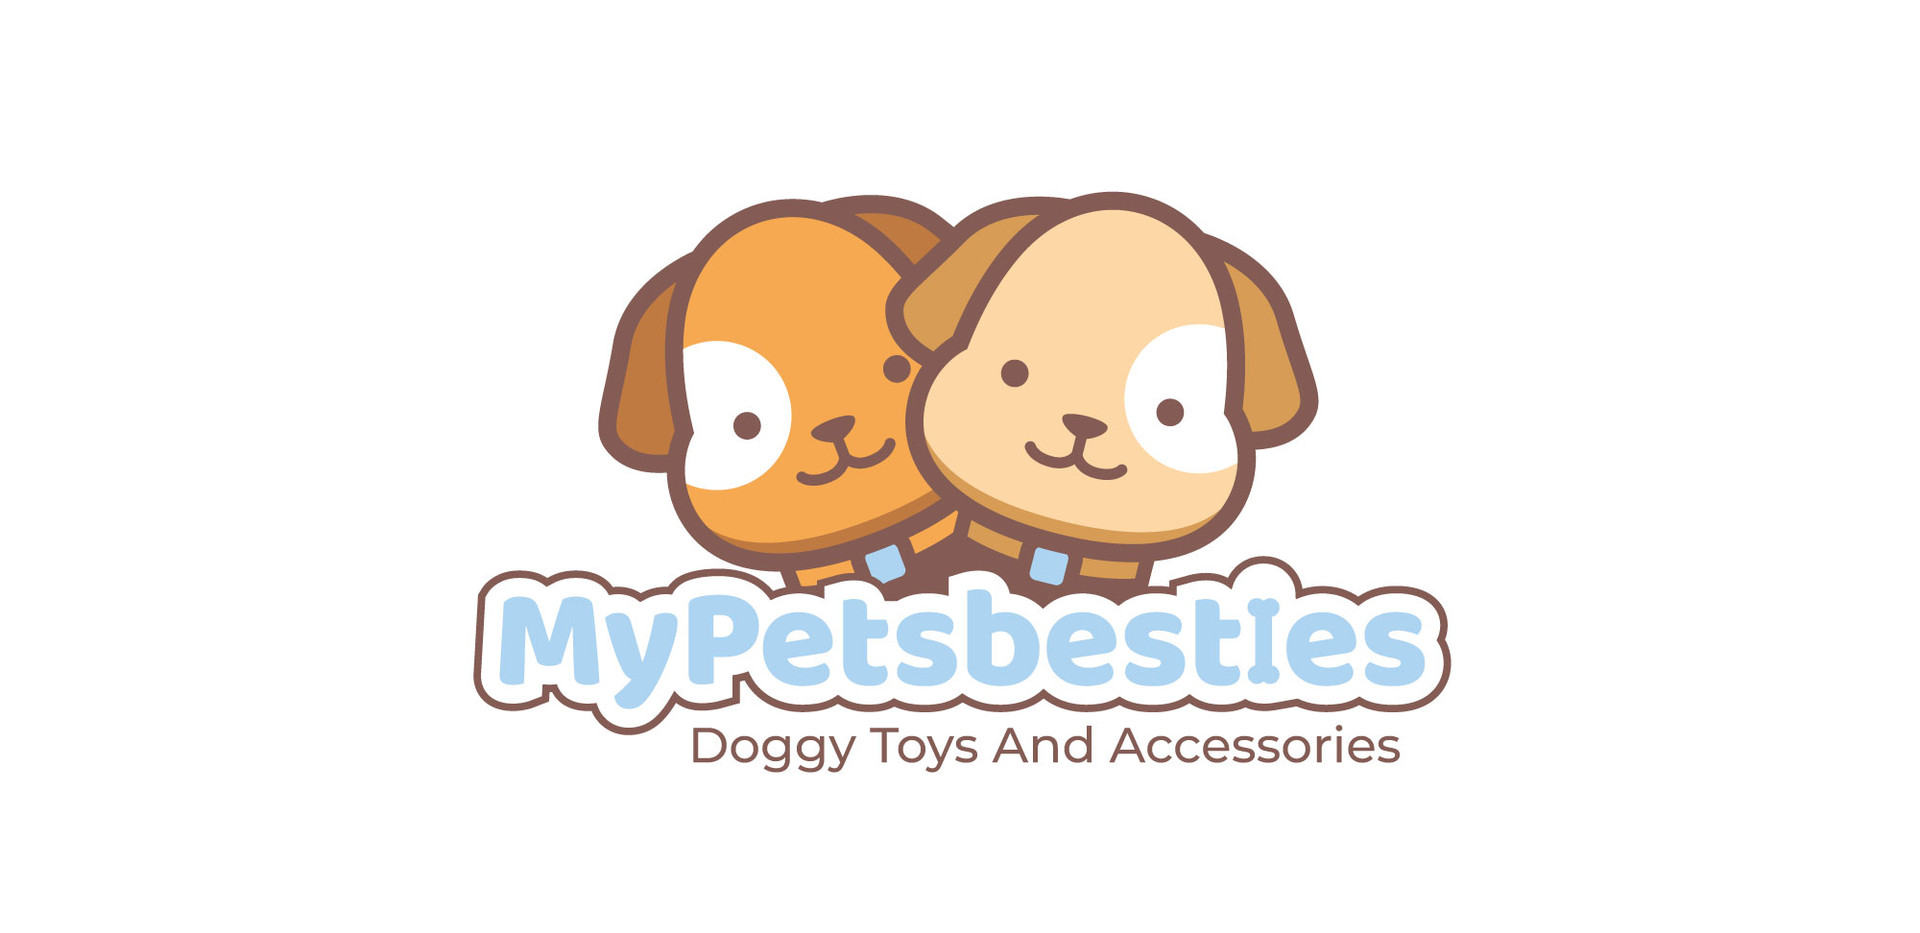 Mypetbesties-2nd-d.jpg